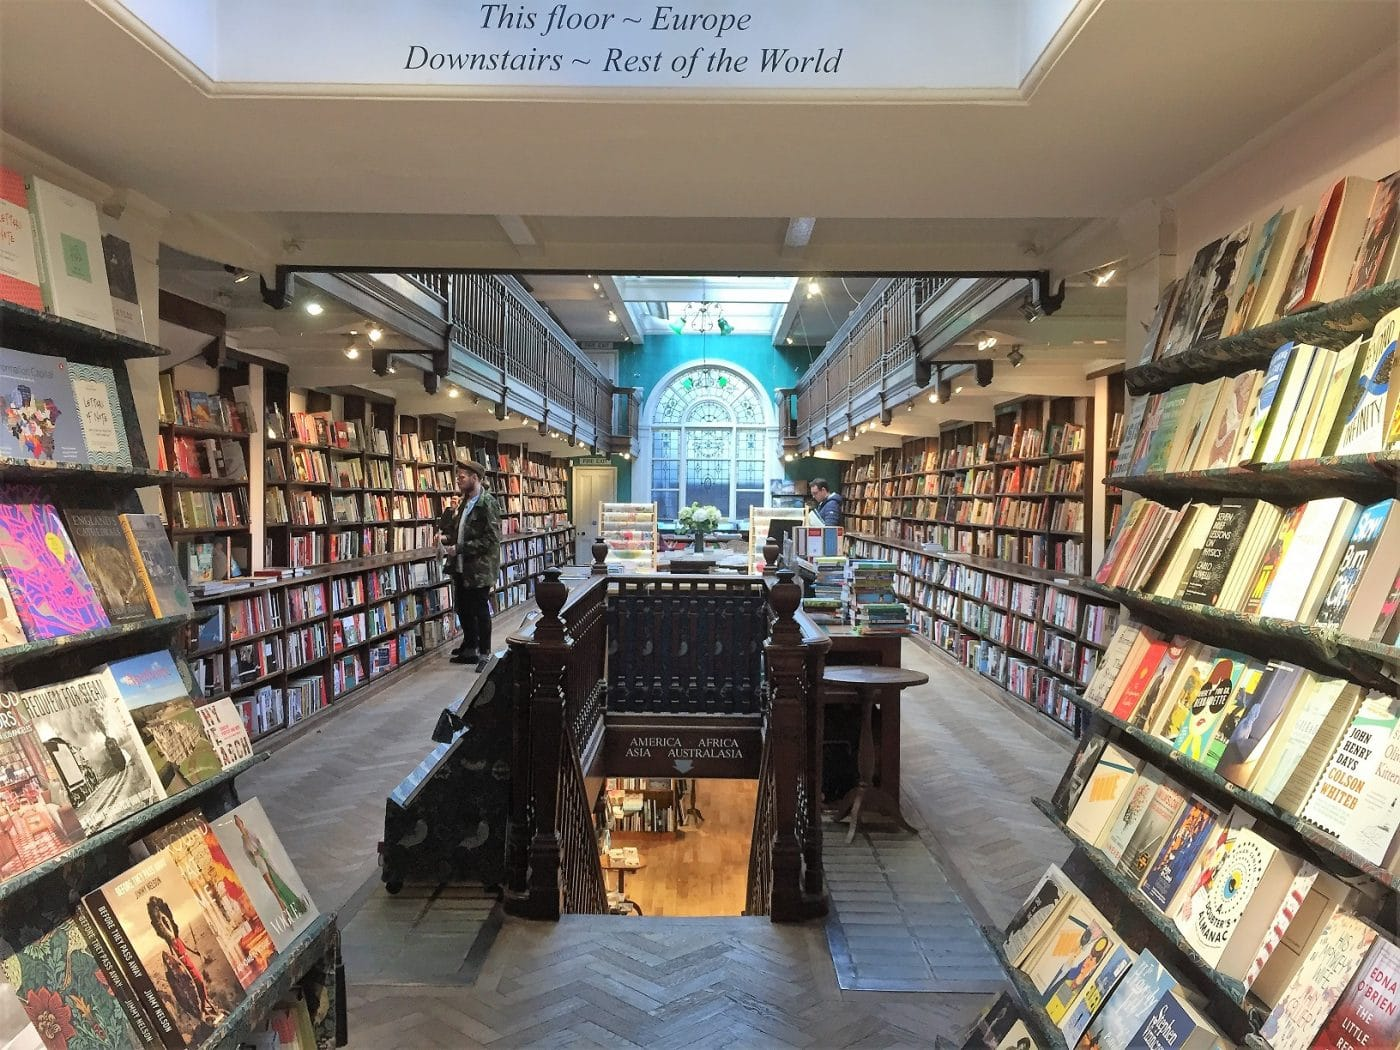 Browse the books in the atmospheric Daunt Bookshop in Marylebone High Street